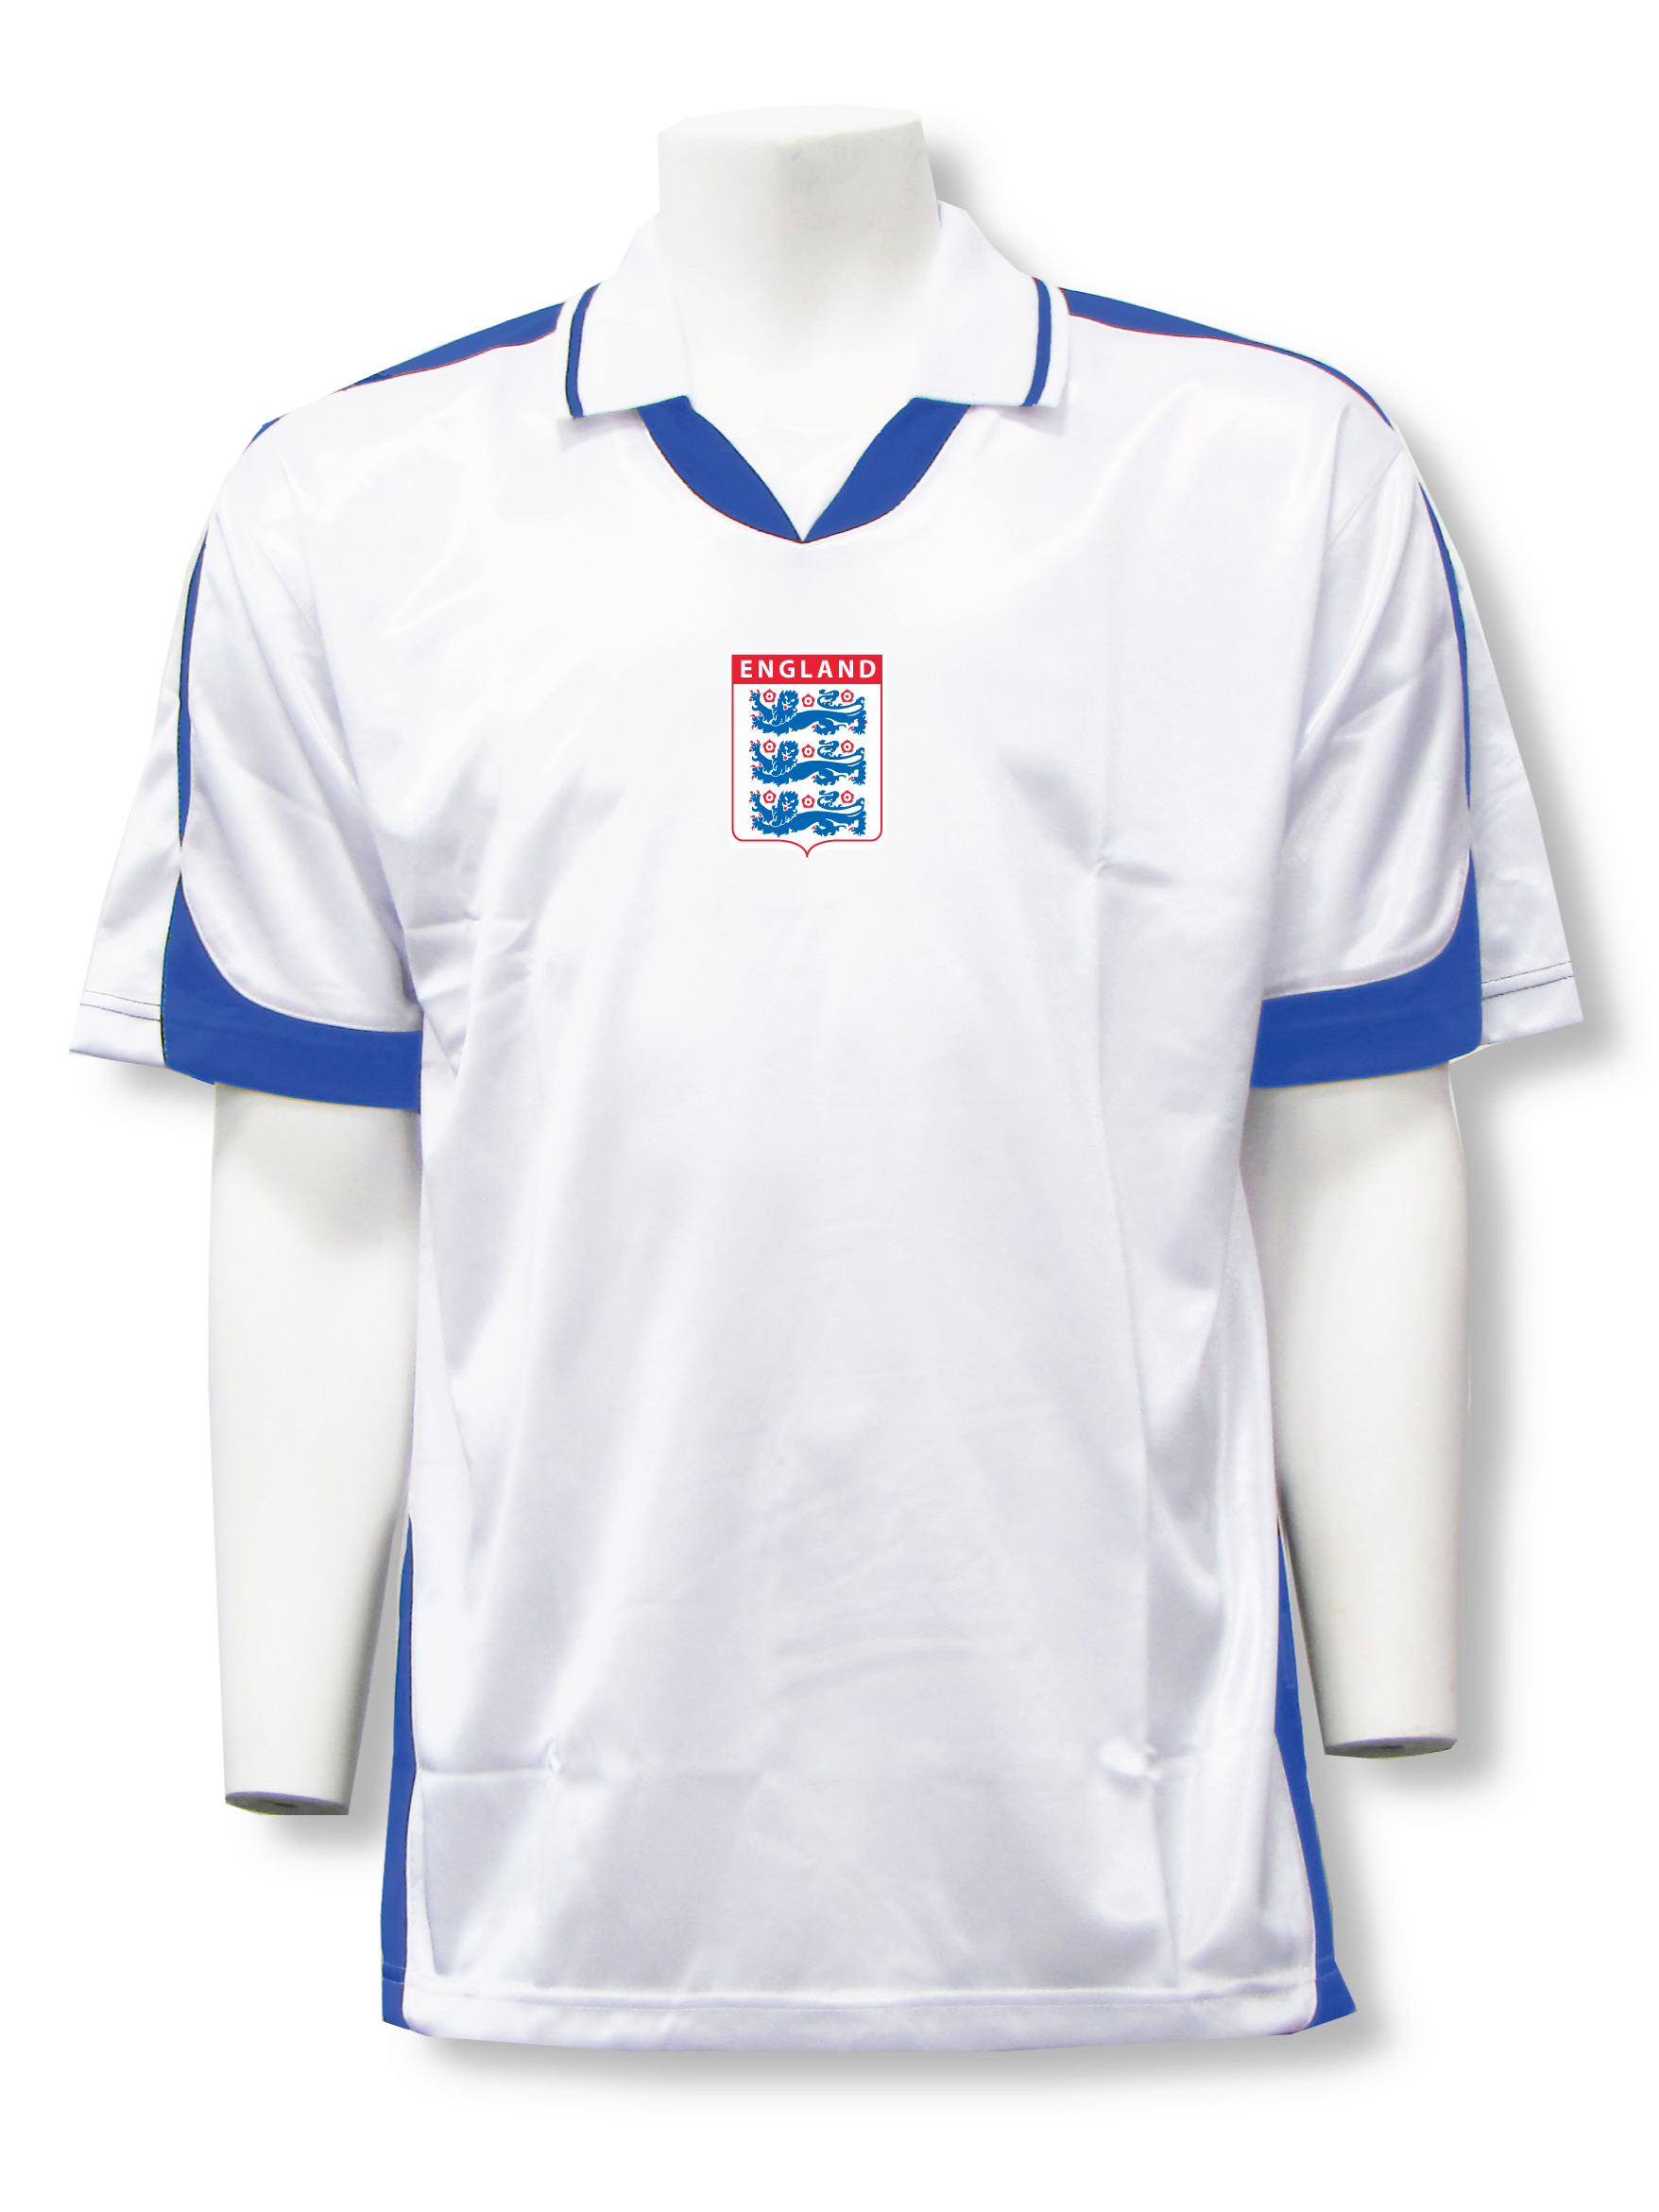 England soccer jersey in whiteroyal